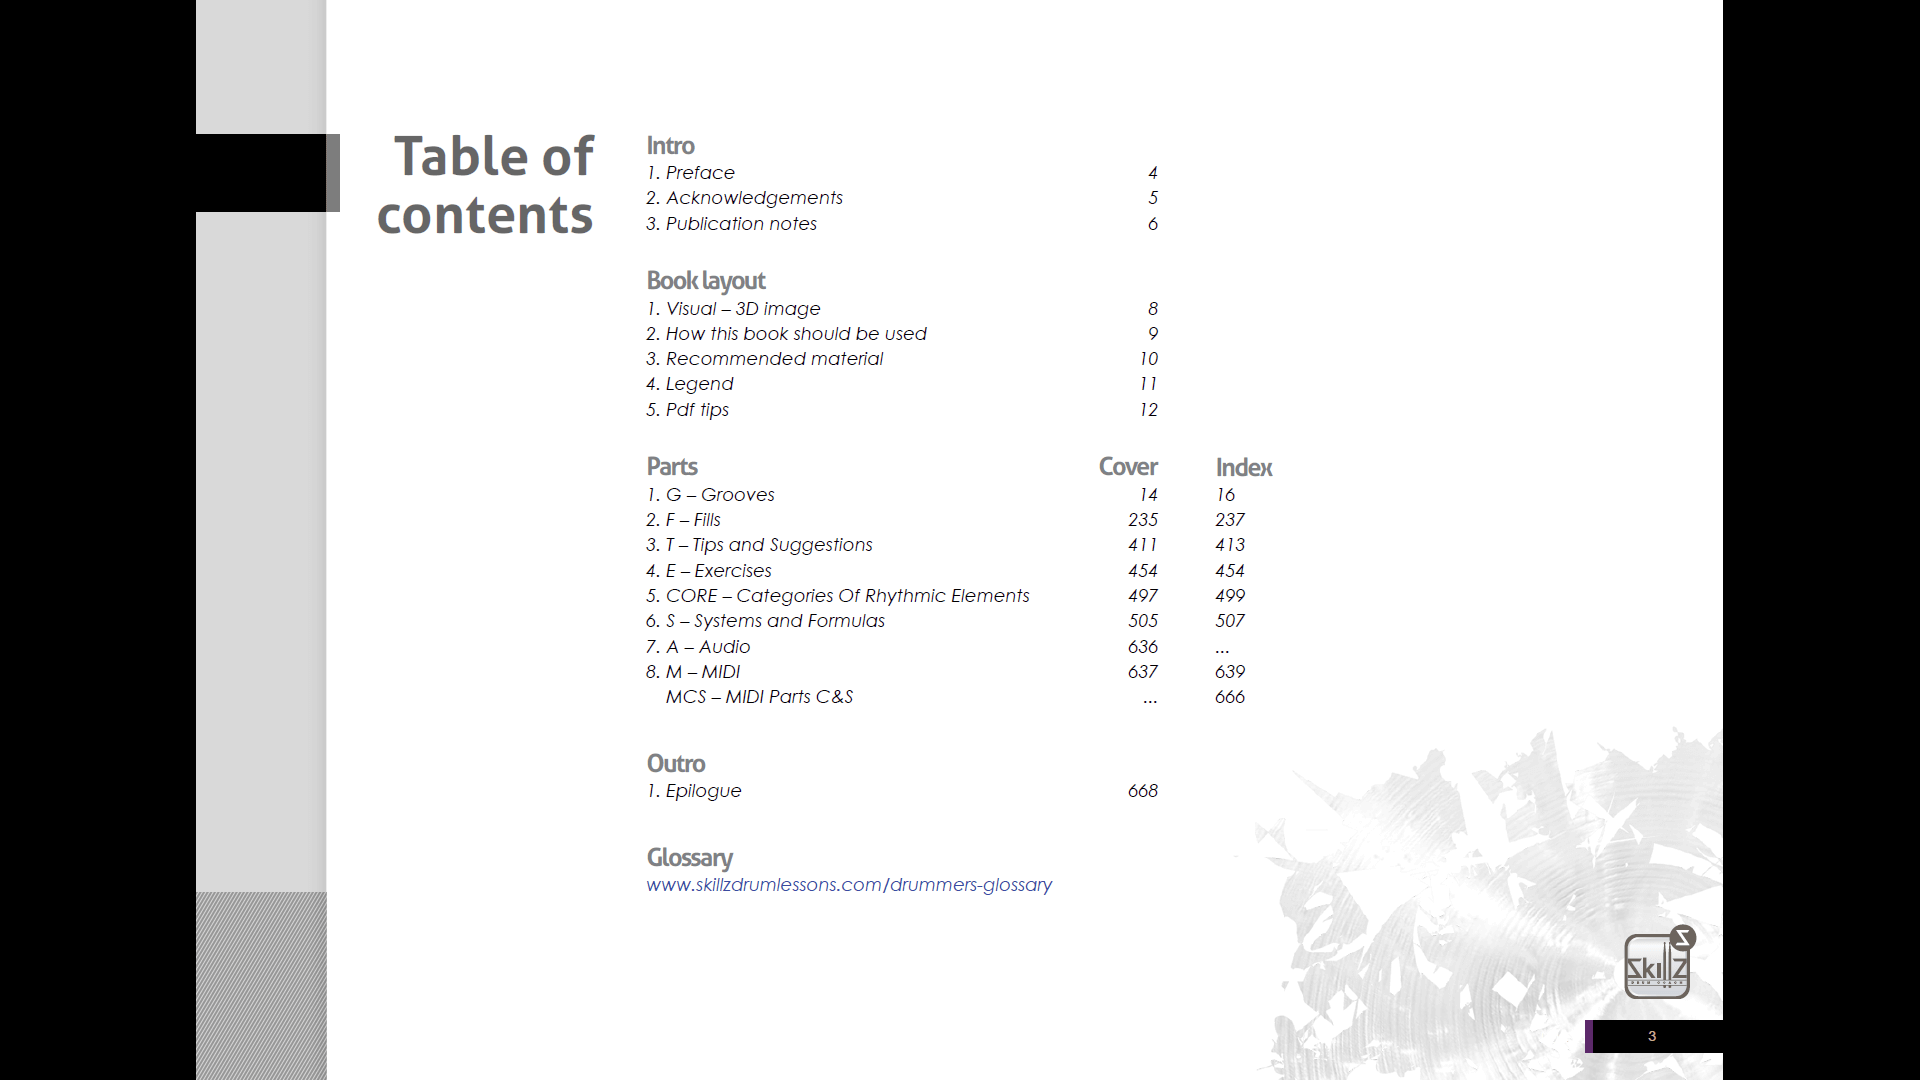 Screenshot Sub 5 Table of Contents Skillz Drum Lessons